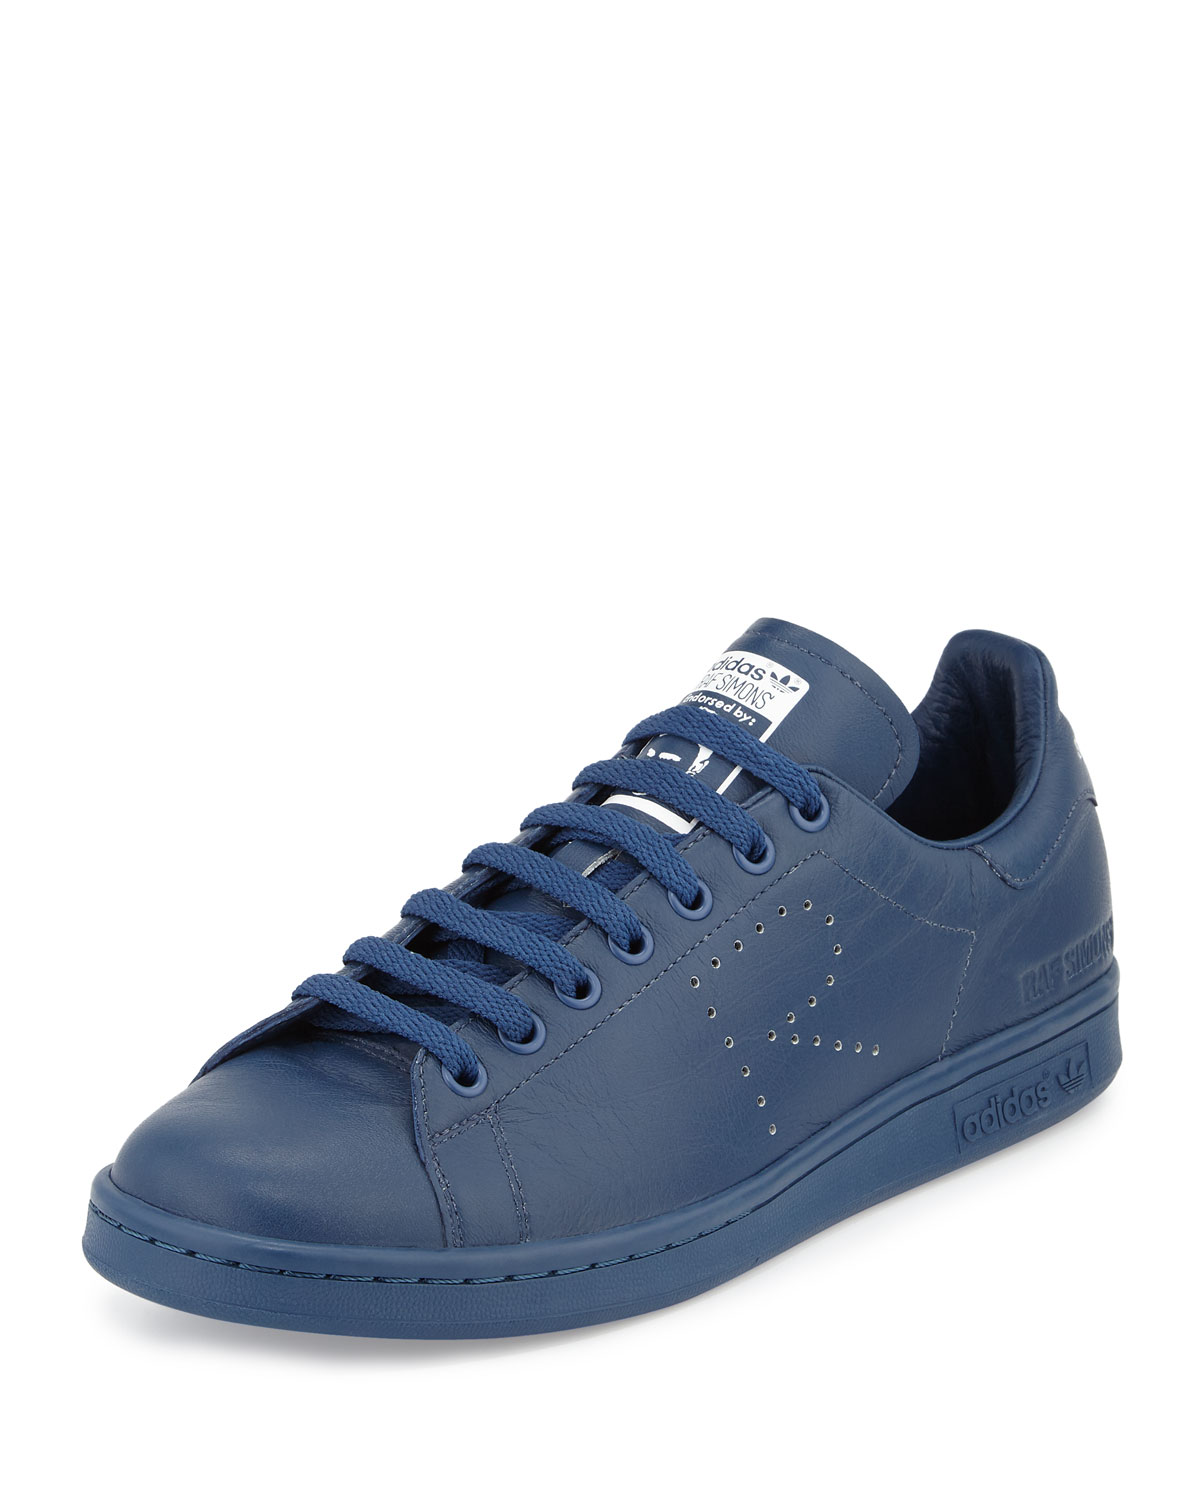 b114c8e29f6 adidas by Raf Simons Men s Stan Smith Leather Sneakers